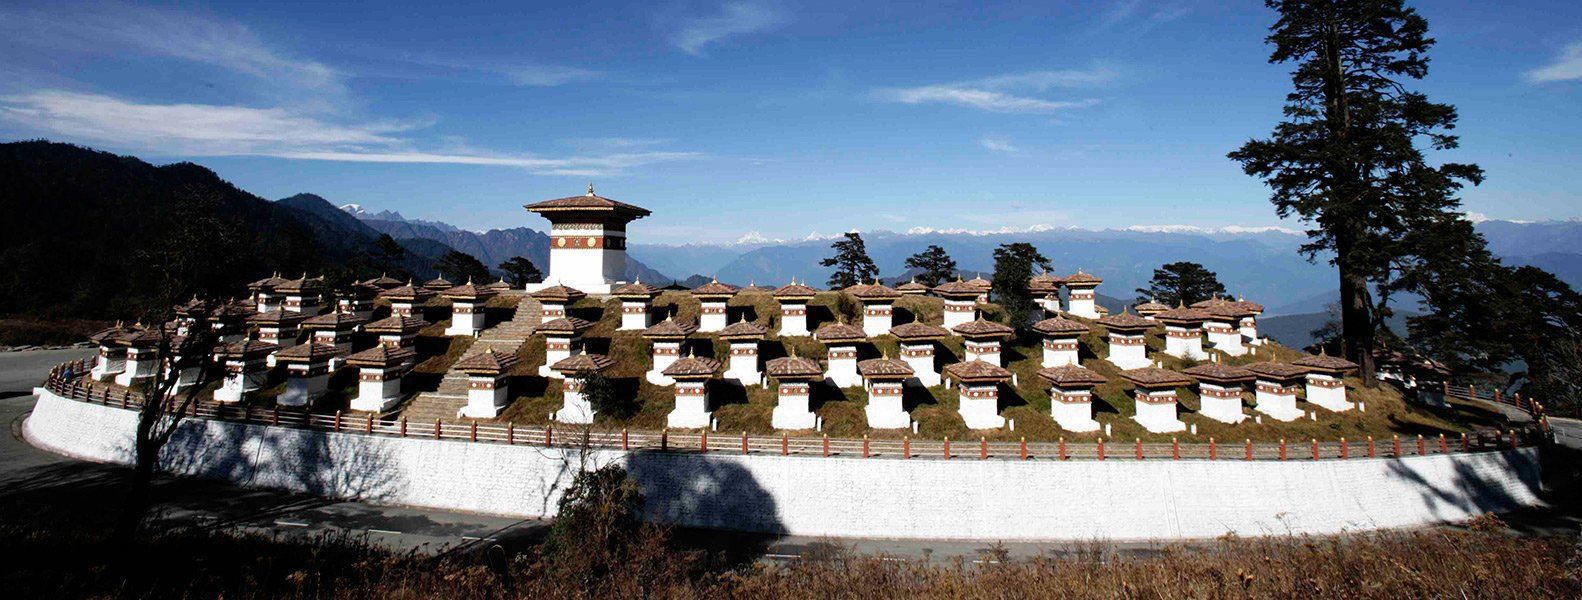 Dilgo Khyentse Rinpoche's Residence Memorial House Upper Paro Valley, Journey Into Far East - Bhutan Tour Agent for Culture Tours in Bhutan